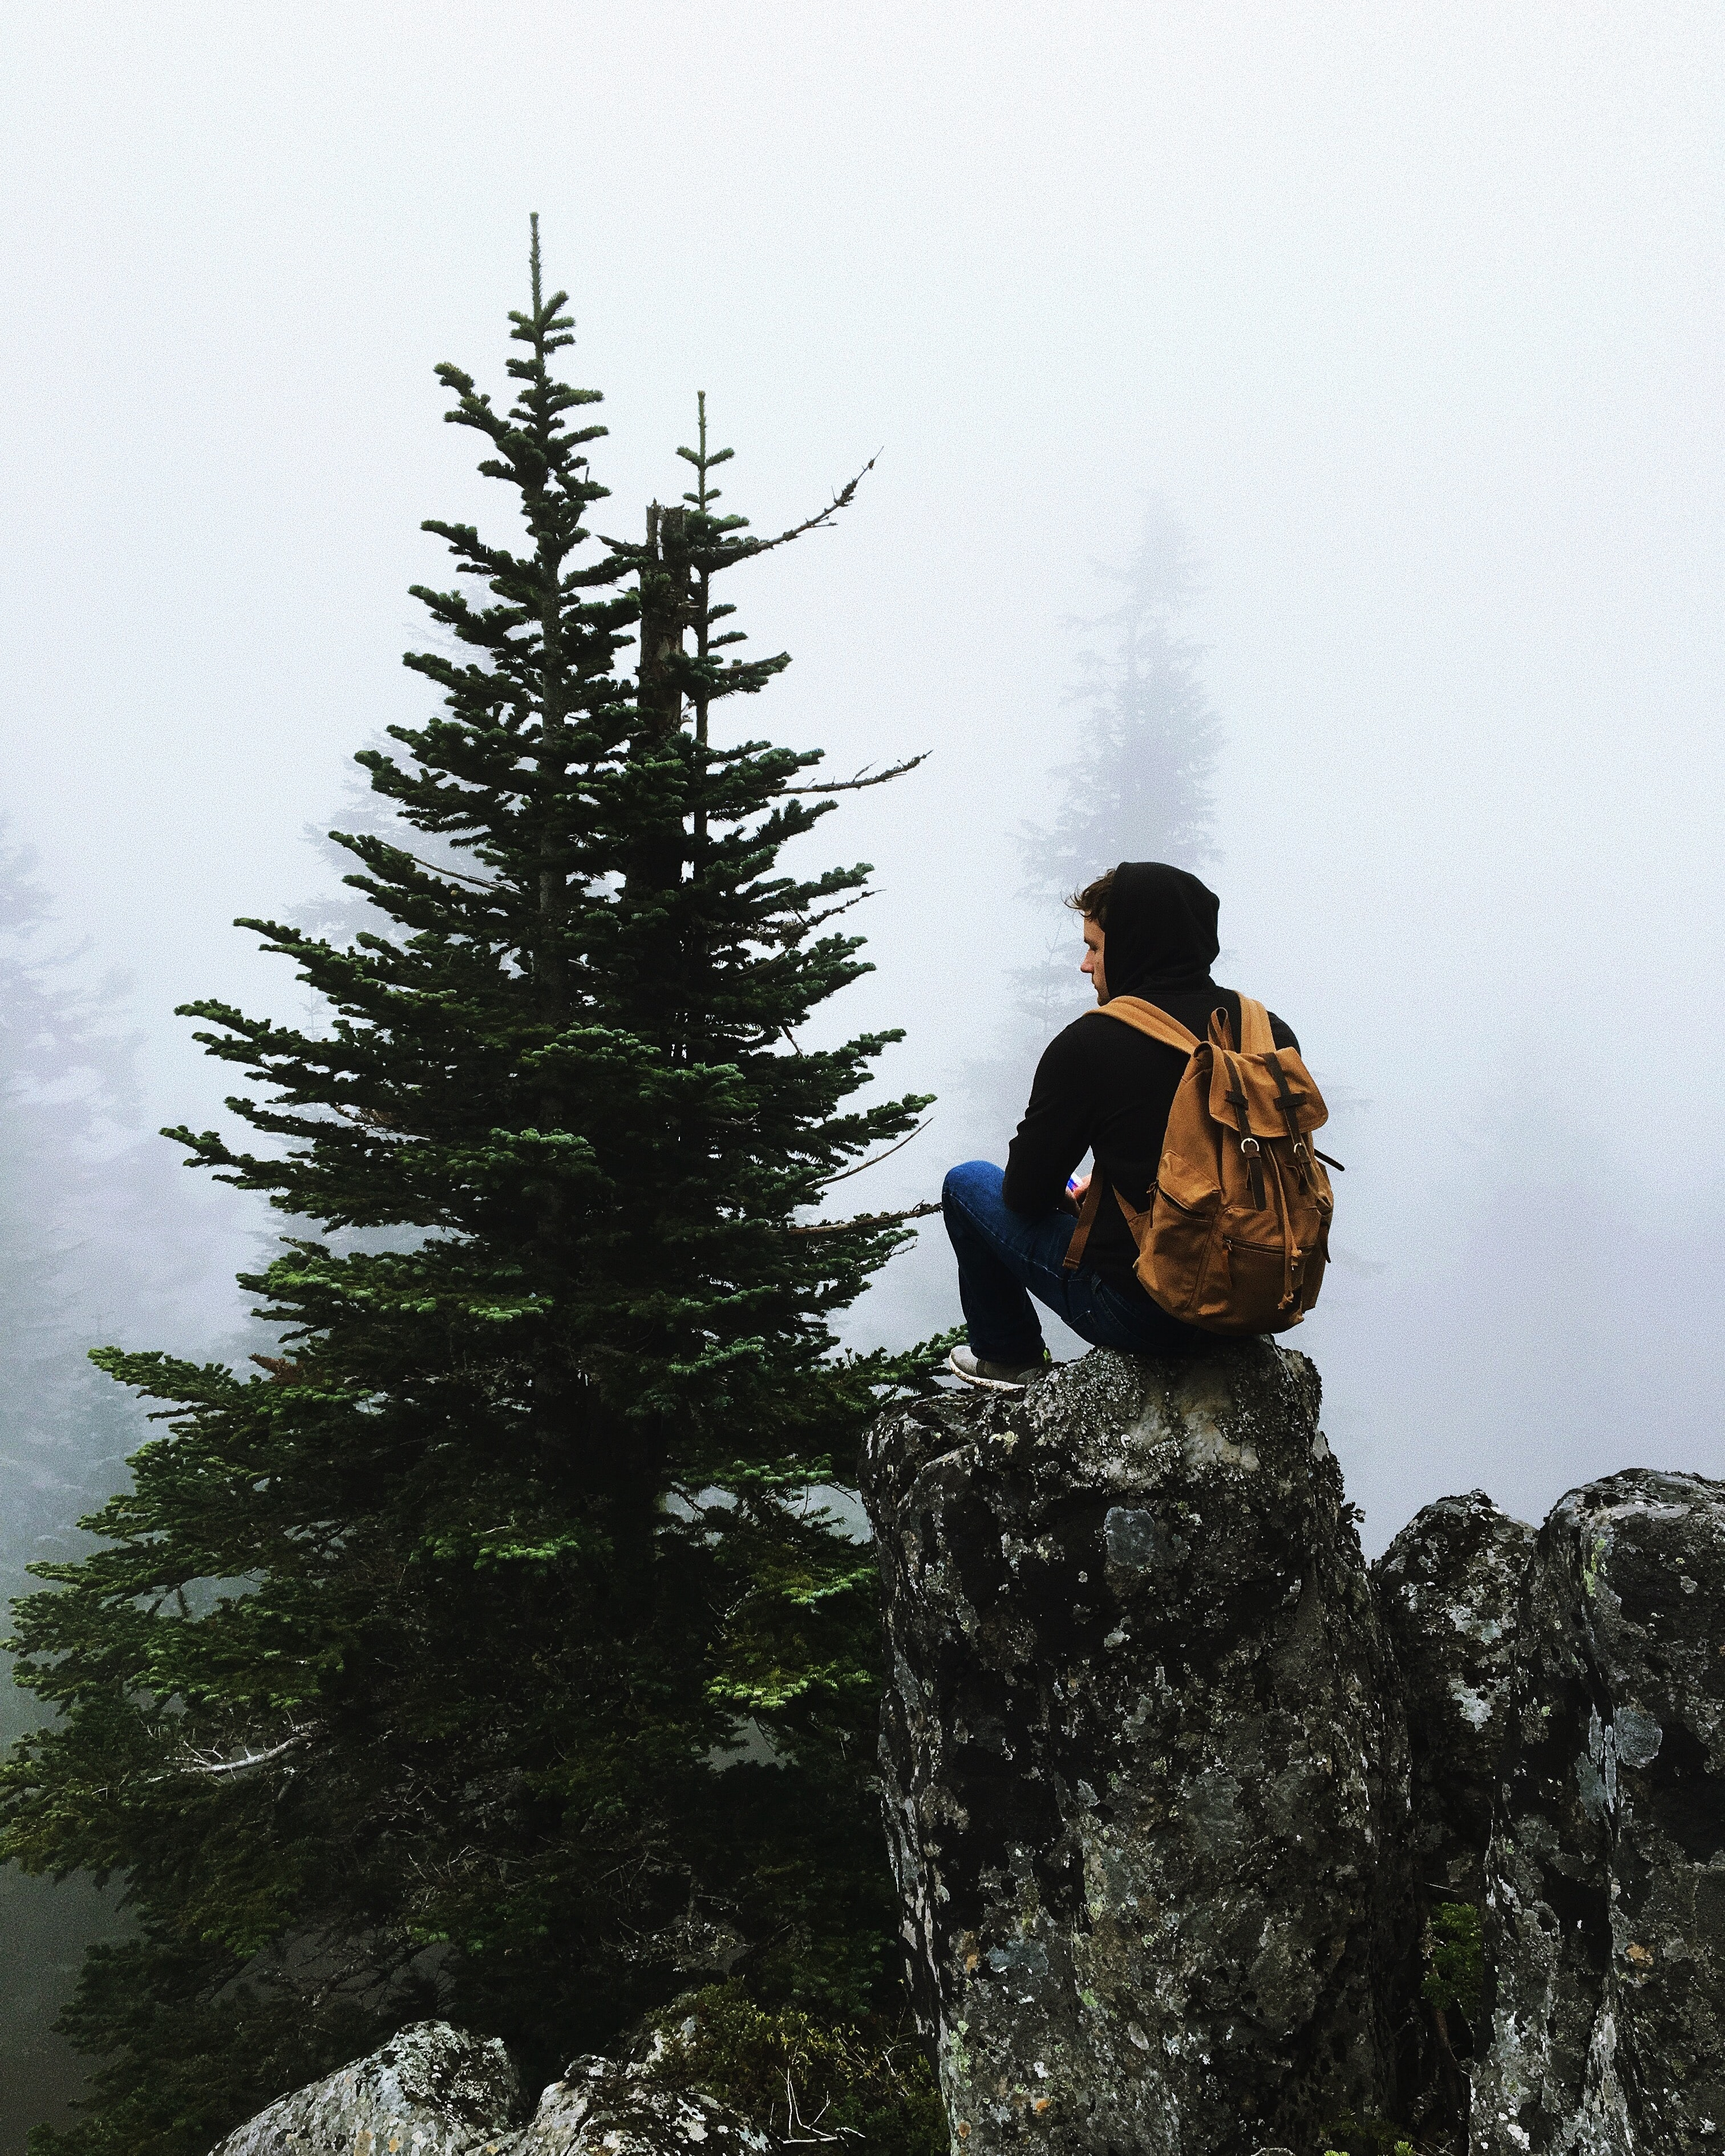 A man with a backpack sitting on a vertical rock overlooking mist-shrouded trees